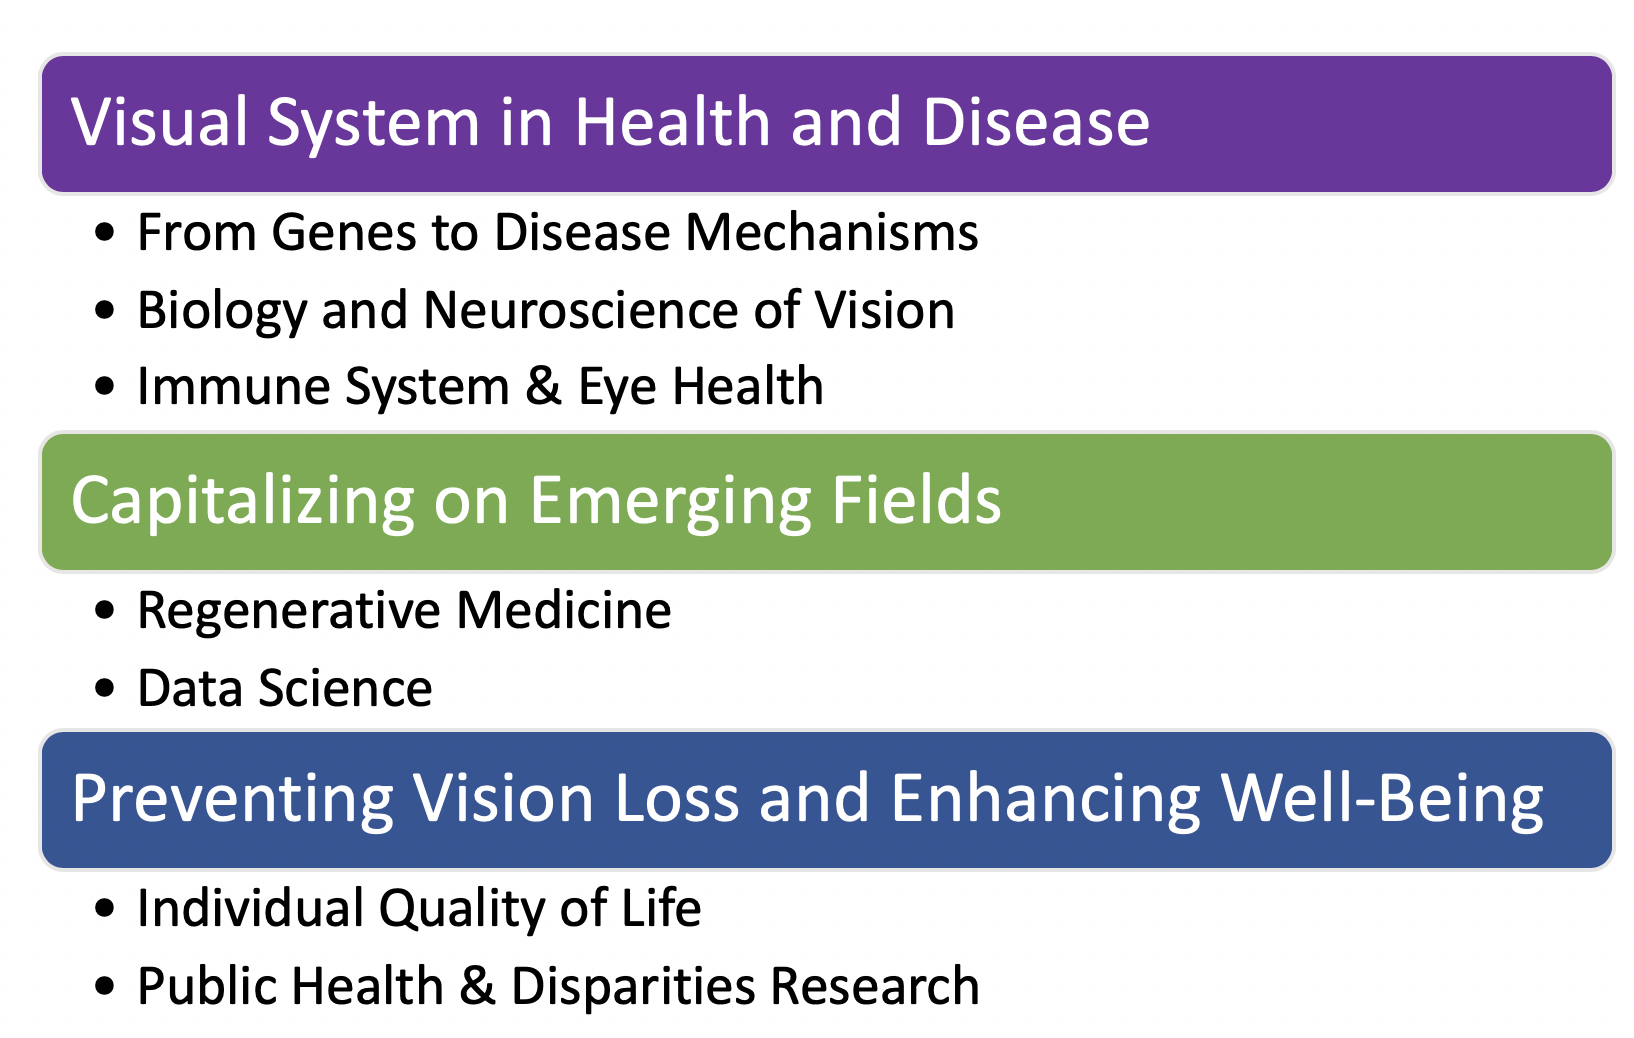 Visual System in Health and Disease  -  From Genes to Disease Mechanisms  ·         Biology and Neuroscience of Vision  ·         Immune System and Eye Health  Capitalizing on Emerging Fields  -  Regenerative Medicine  - Data Science  Preventing Vision Loss and Enhancing Well-being  - Individual Quality of Life  - Public Health and Disparities Research